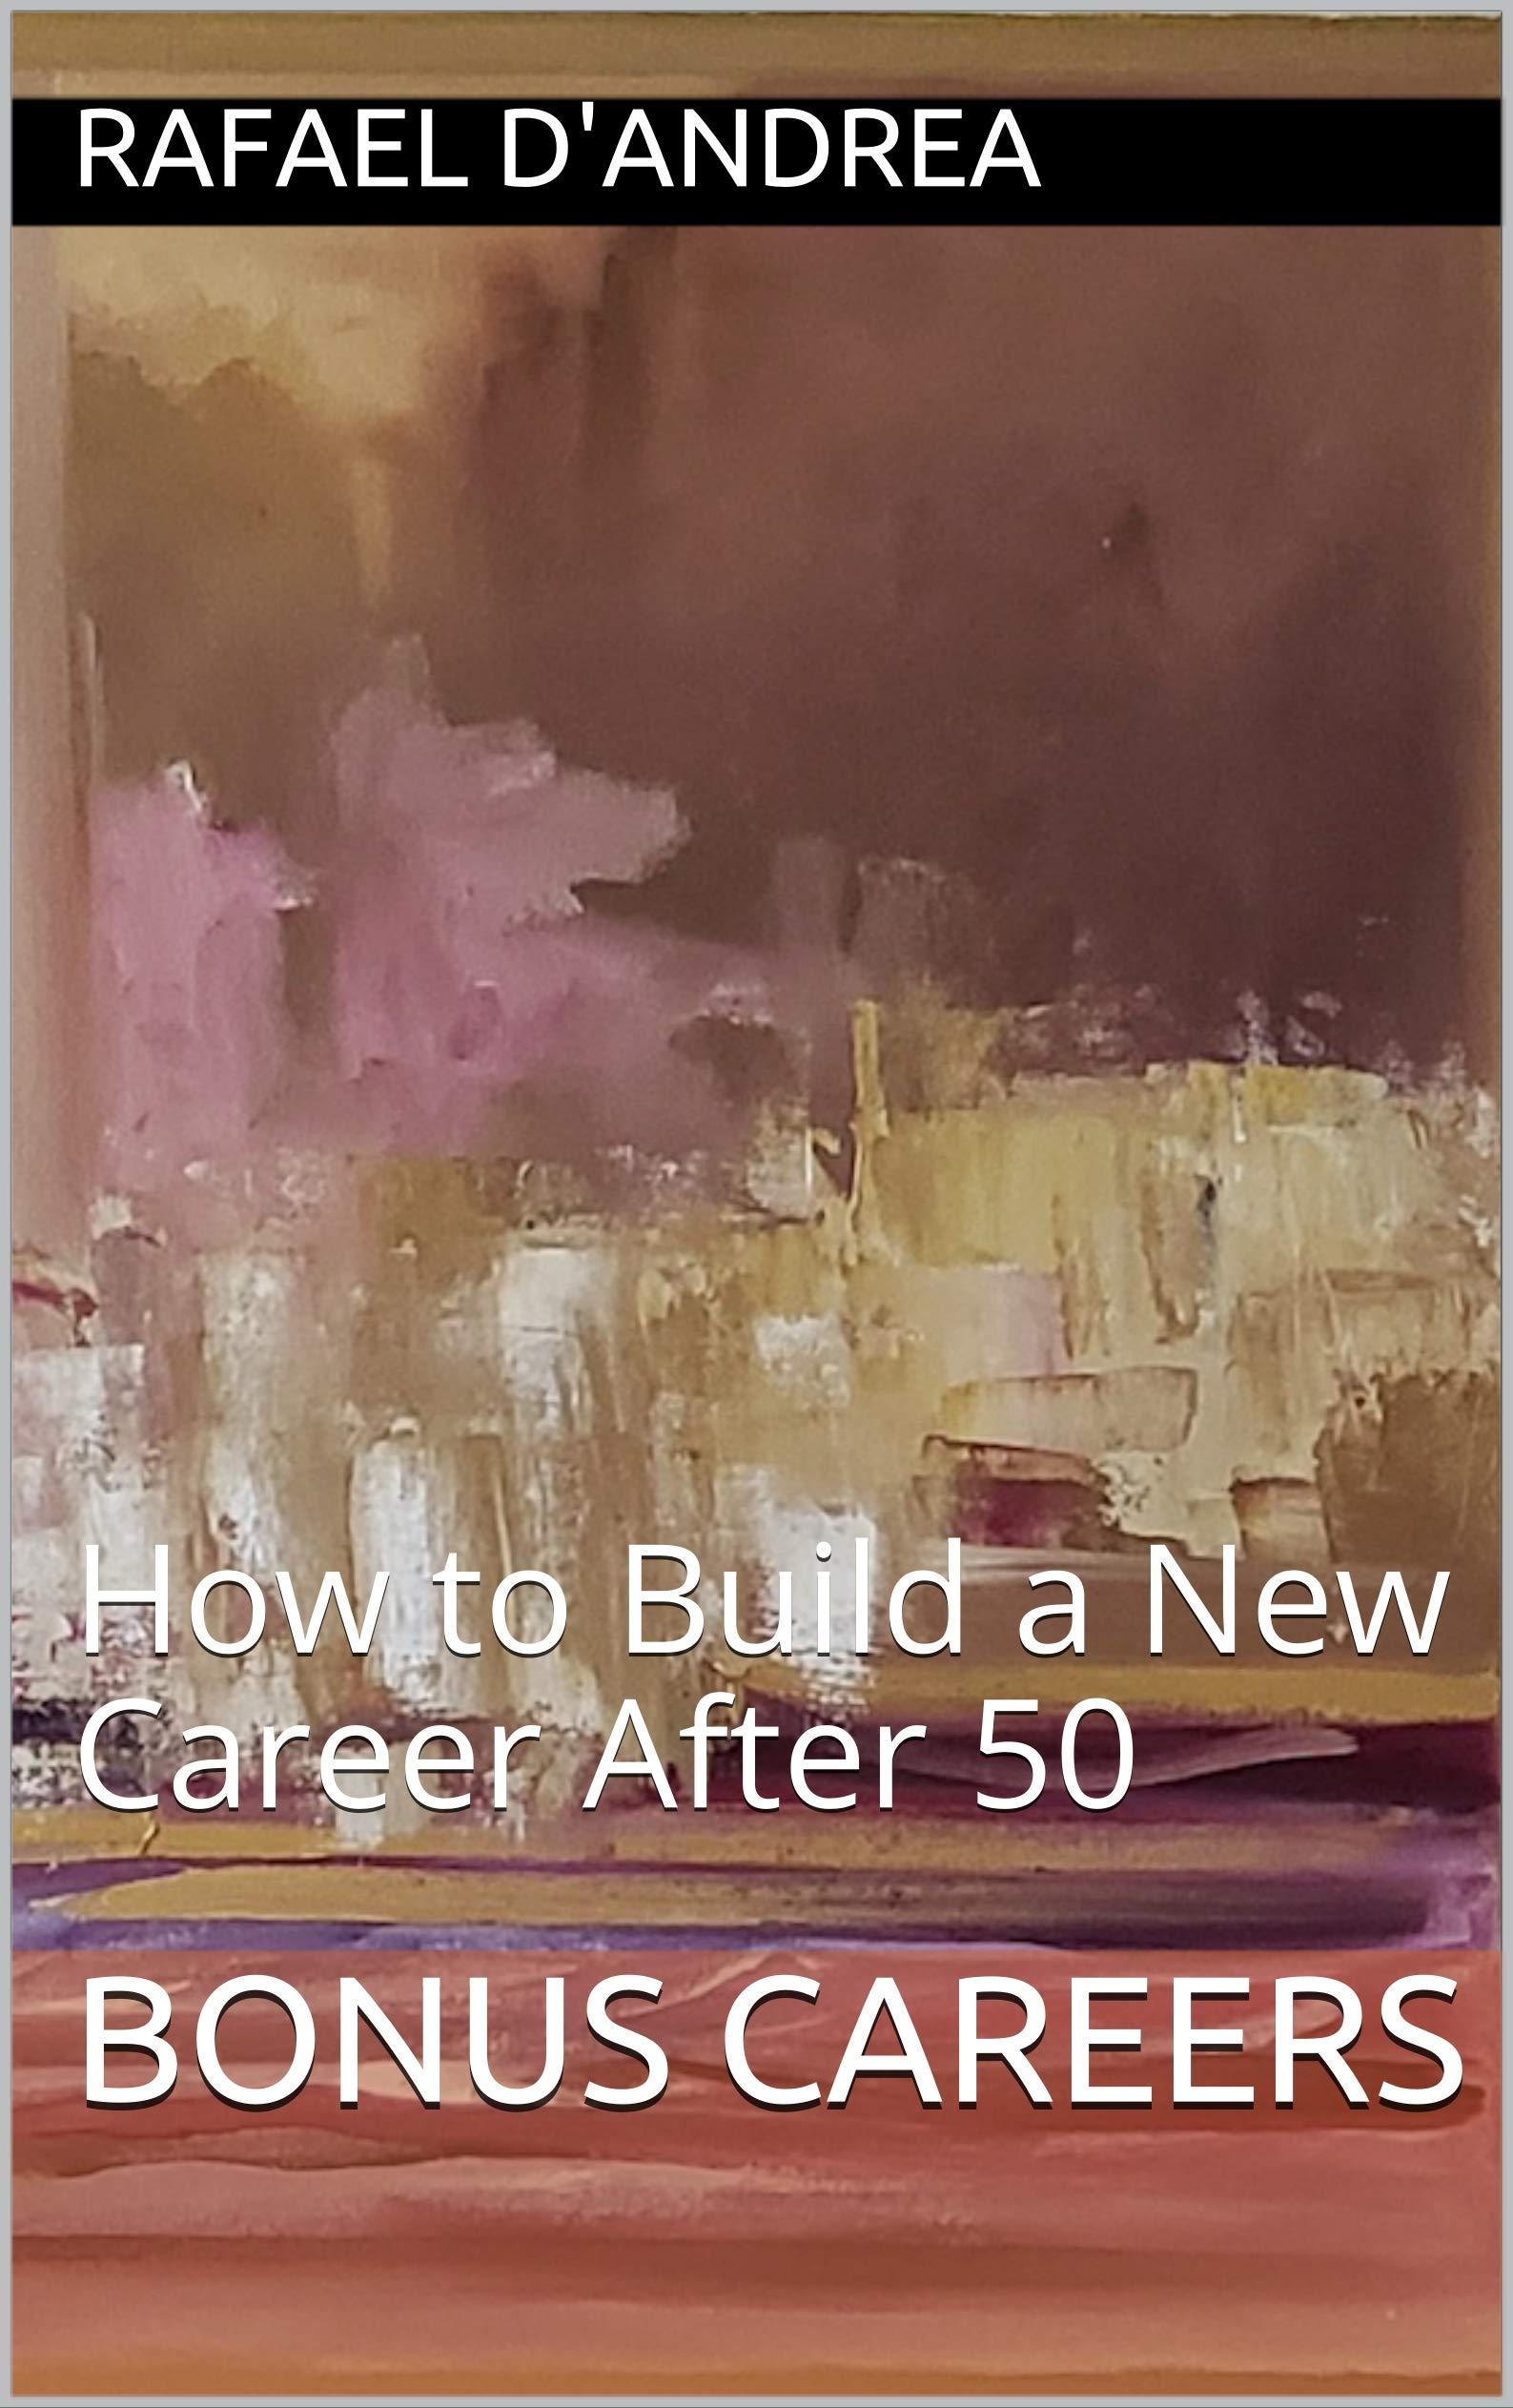 Bonus Careers: How to Build a New Career After 50